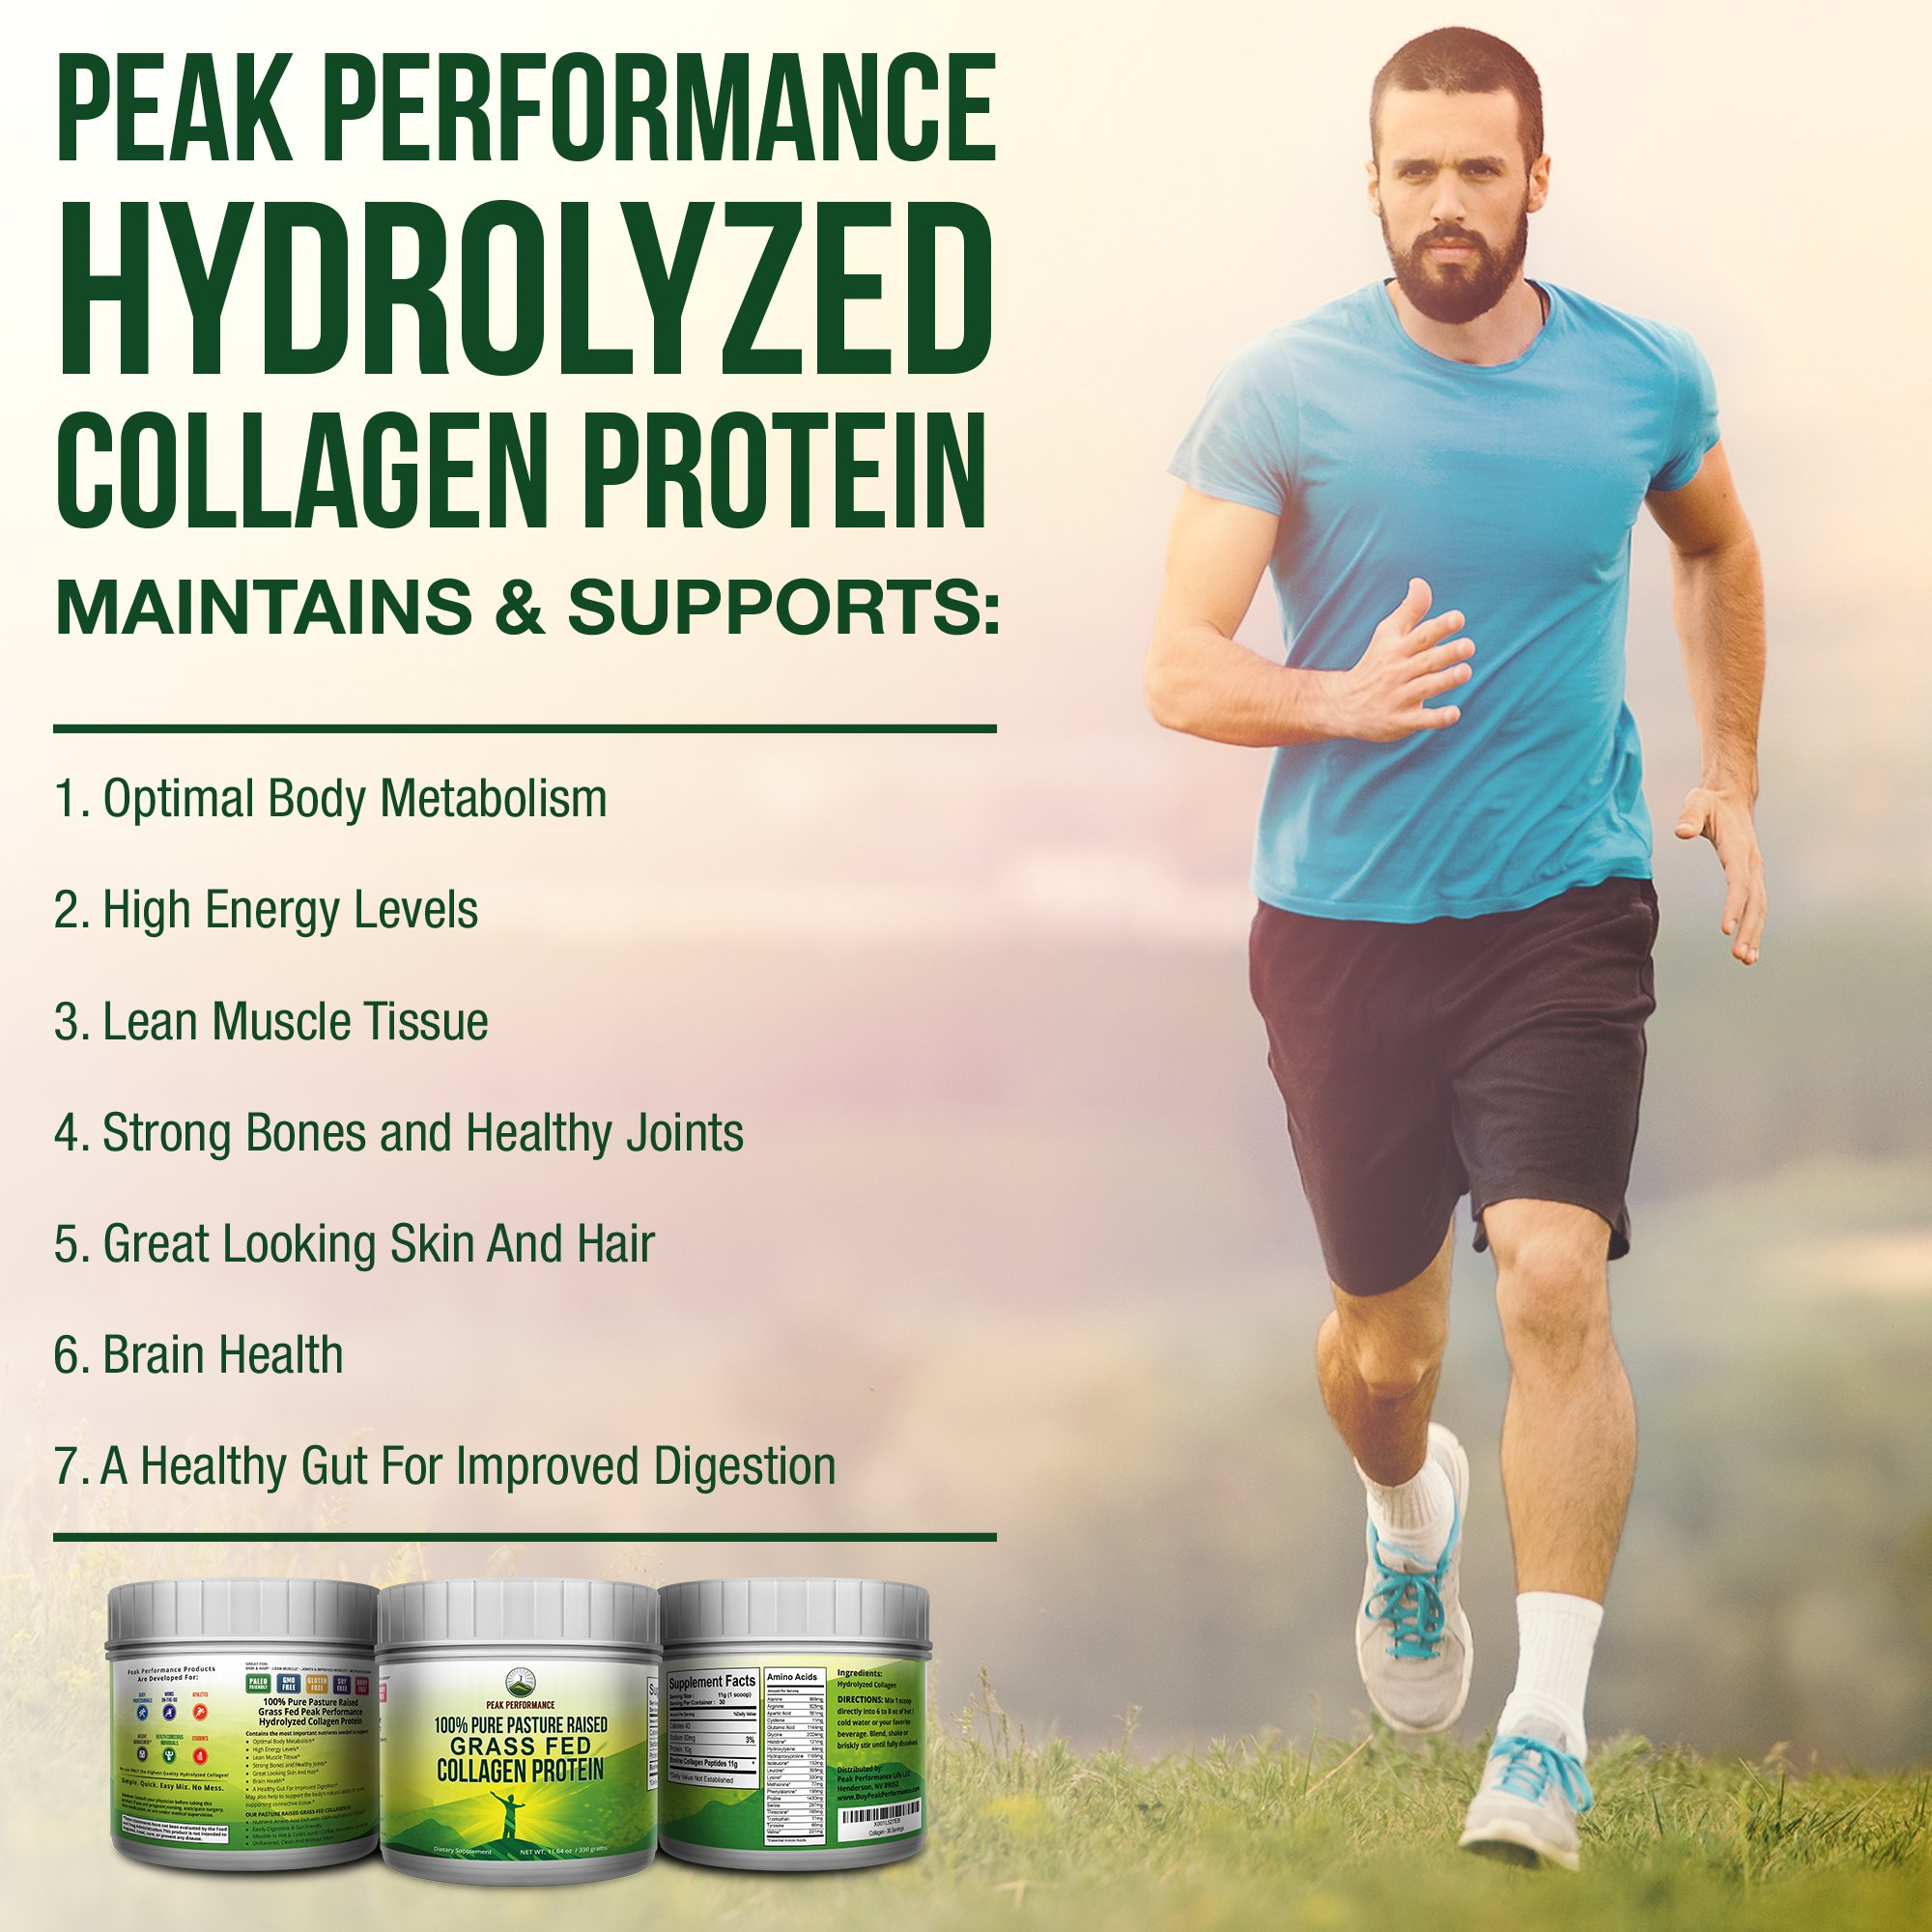 Pure Pasture Raised Grass Fed Hydrolyzed Collagen Protein by Peak Performance. Paleo Friendly, Gluten & Dairy Free Collagen Peptides (Unflavored Collagen) by Peak Performance Coffee (Image #7)